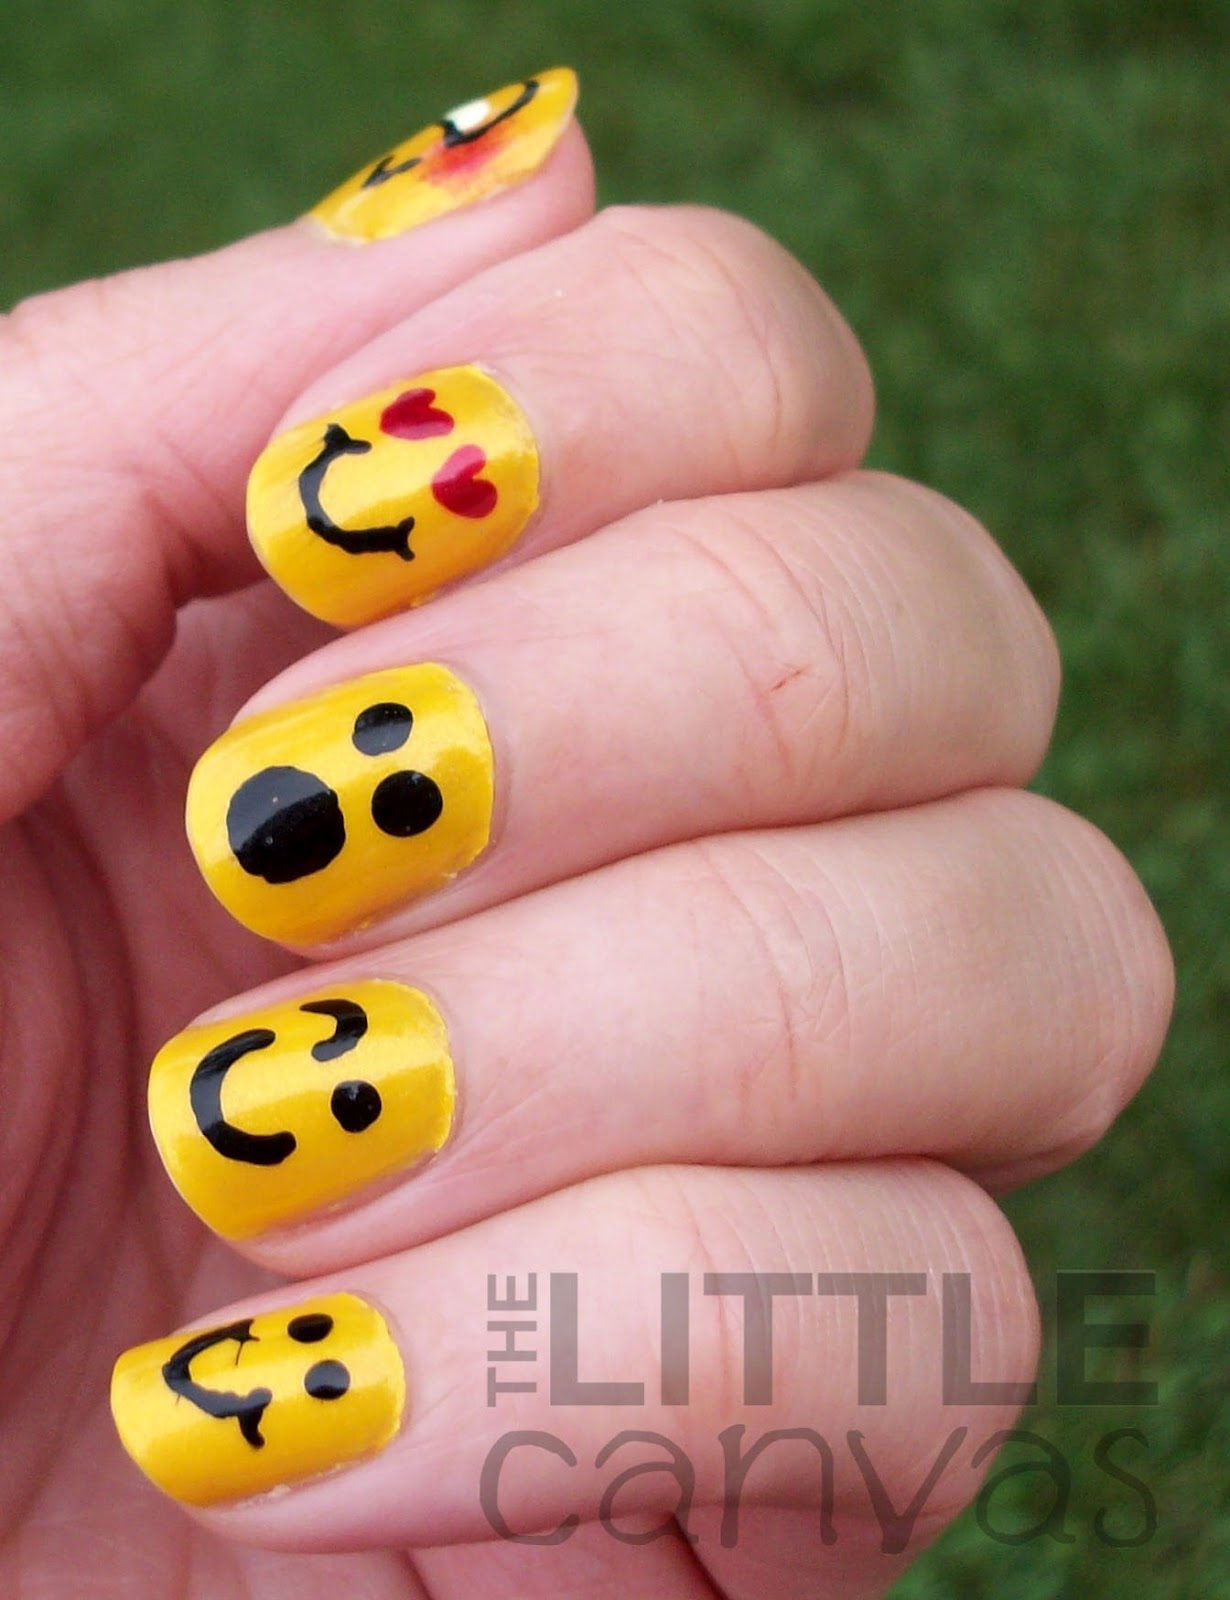 31 Day Challenge - Day 3 - Yellow Nails - Emoticons! - The Little Canvas